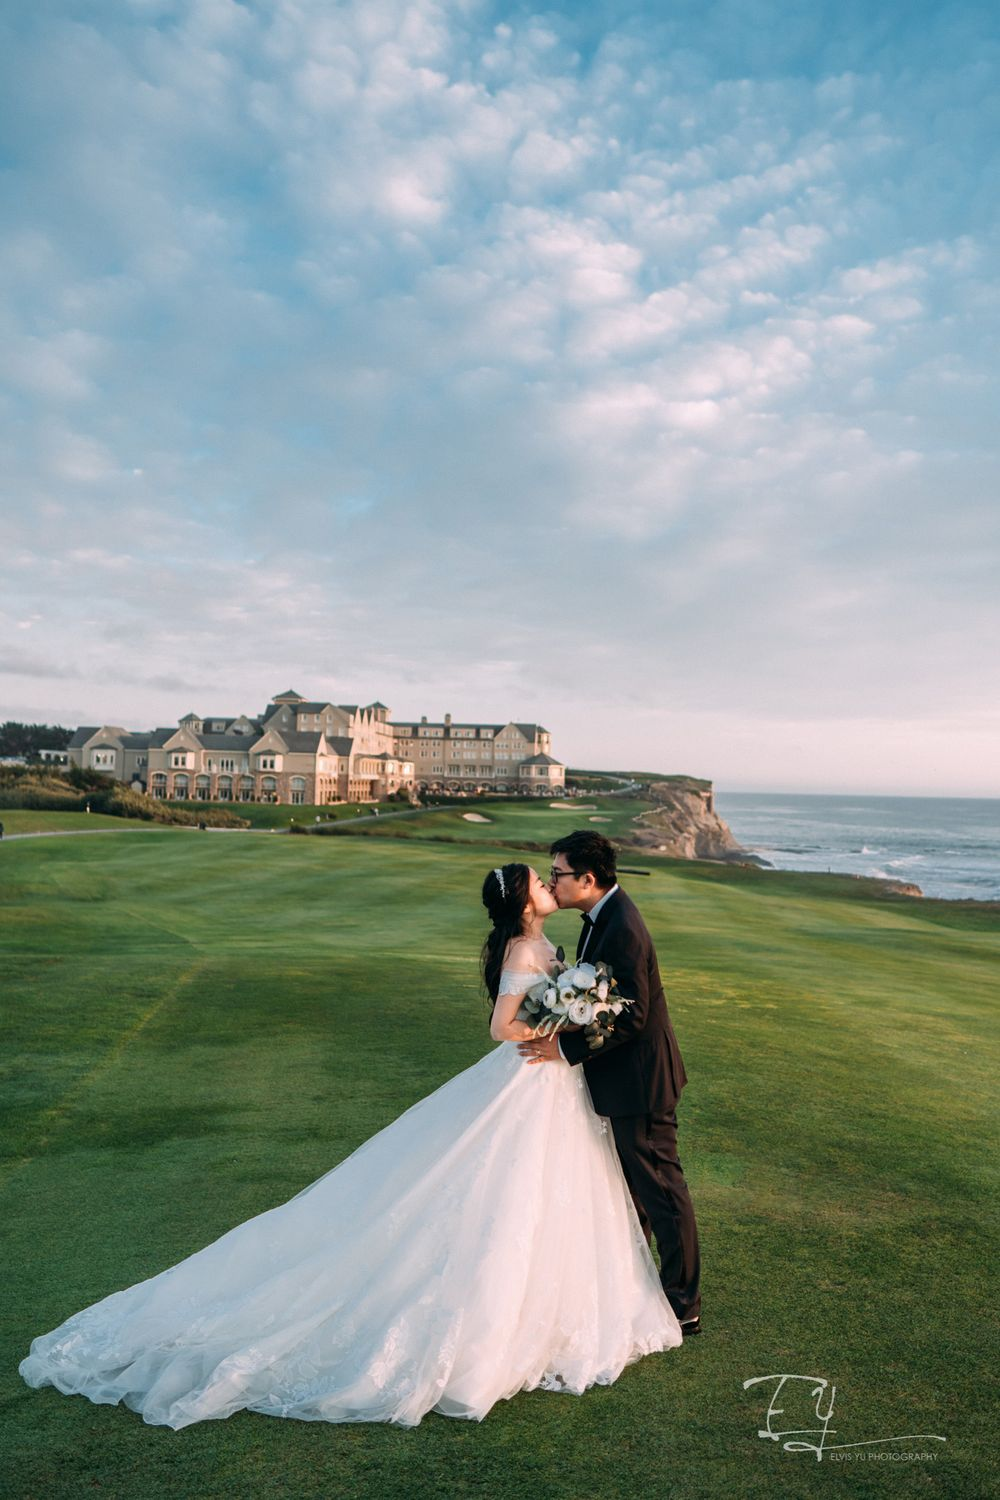 elvis yu photography california engagement wedding day destination wedding ritz carlton half moon bay